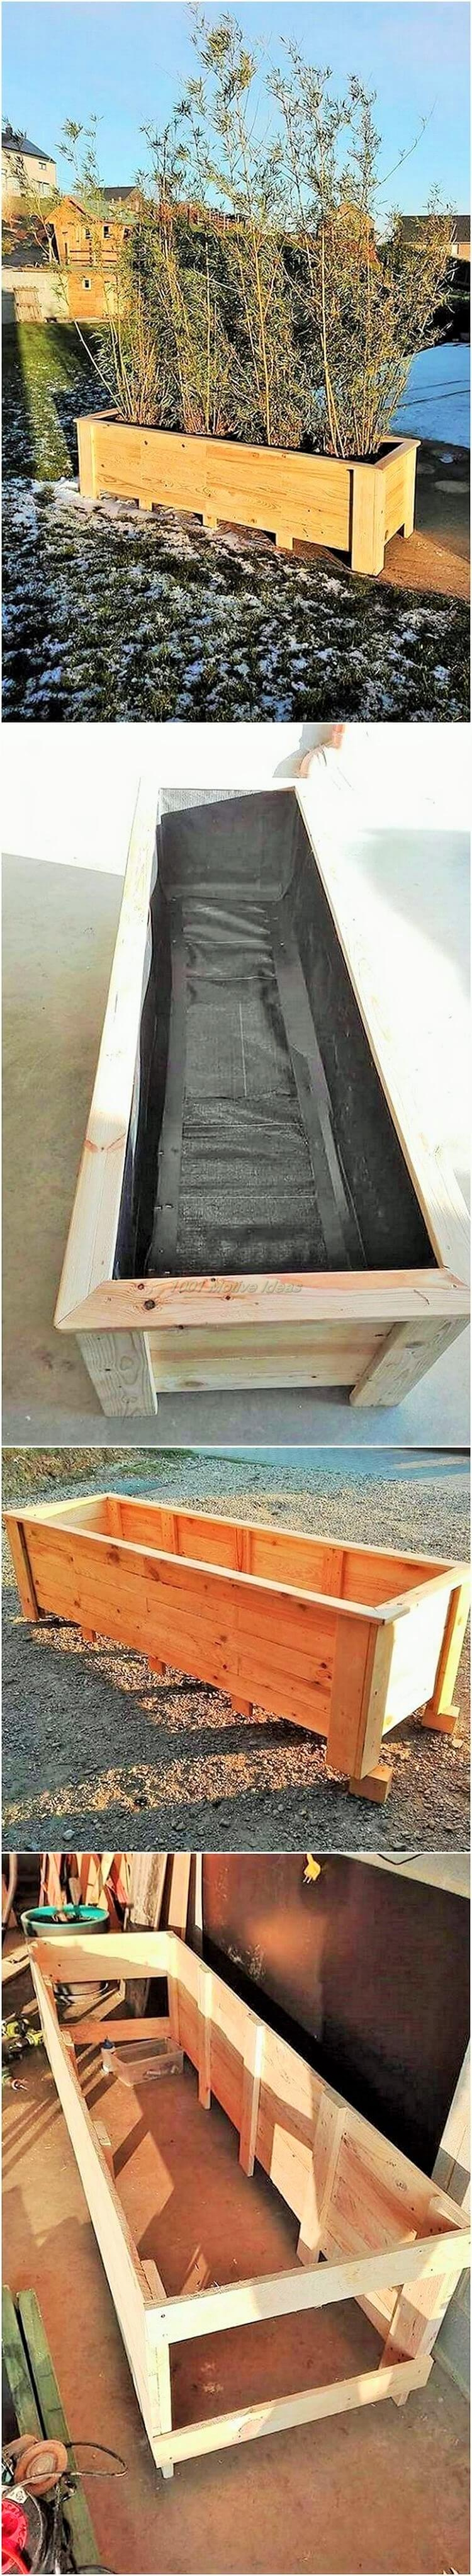 wooden-Pallet-Banch-furniture-Project-Ideas-001